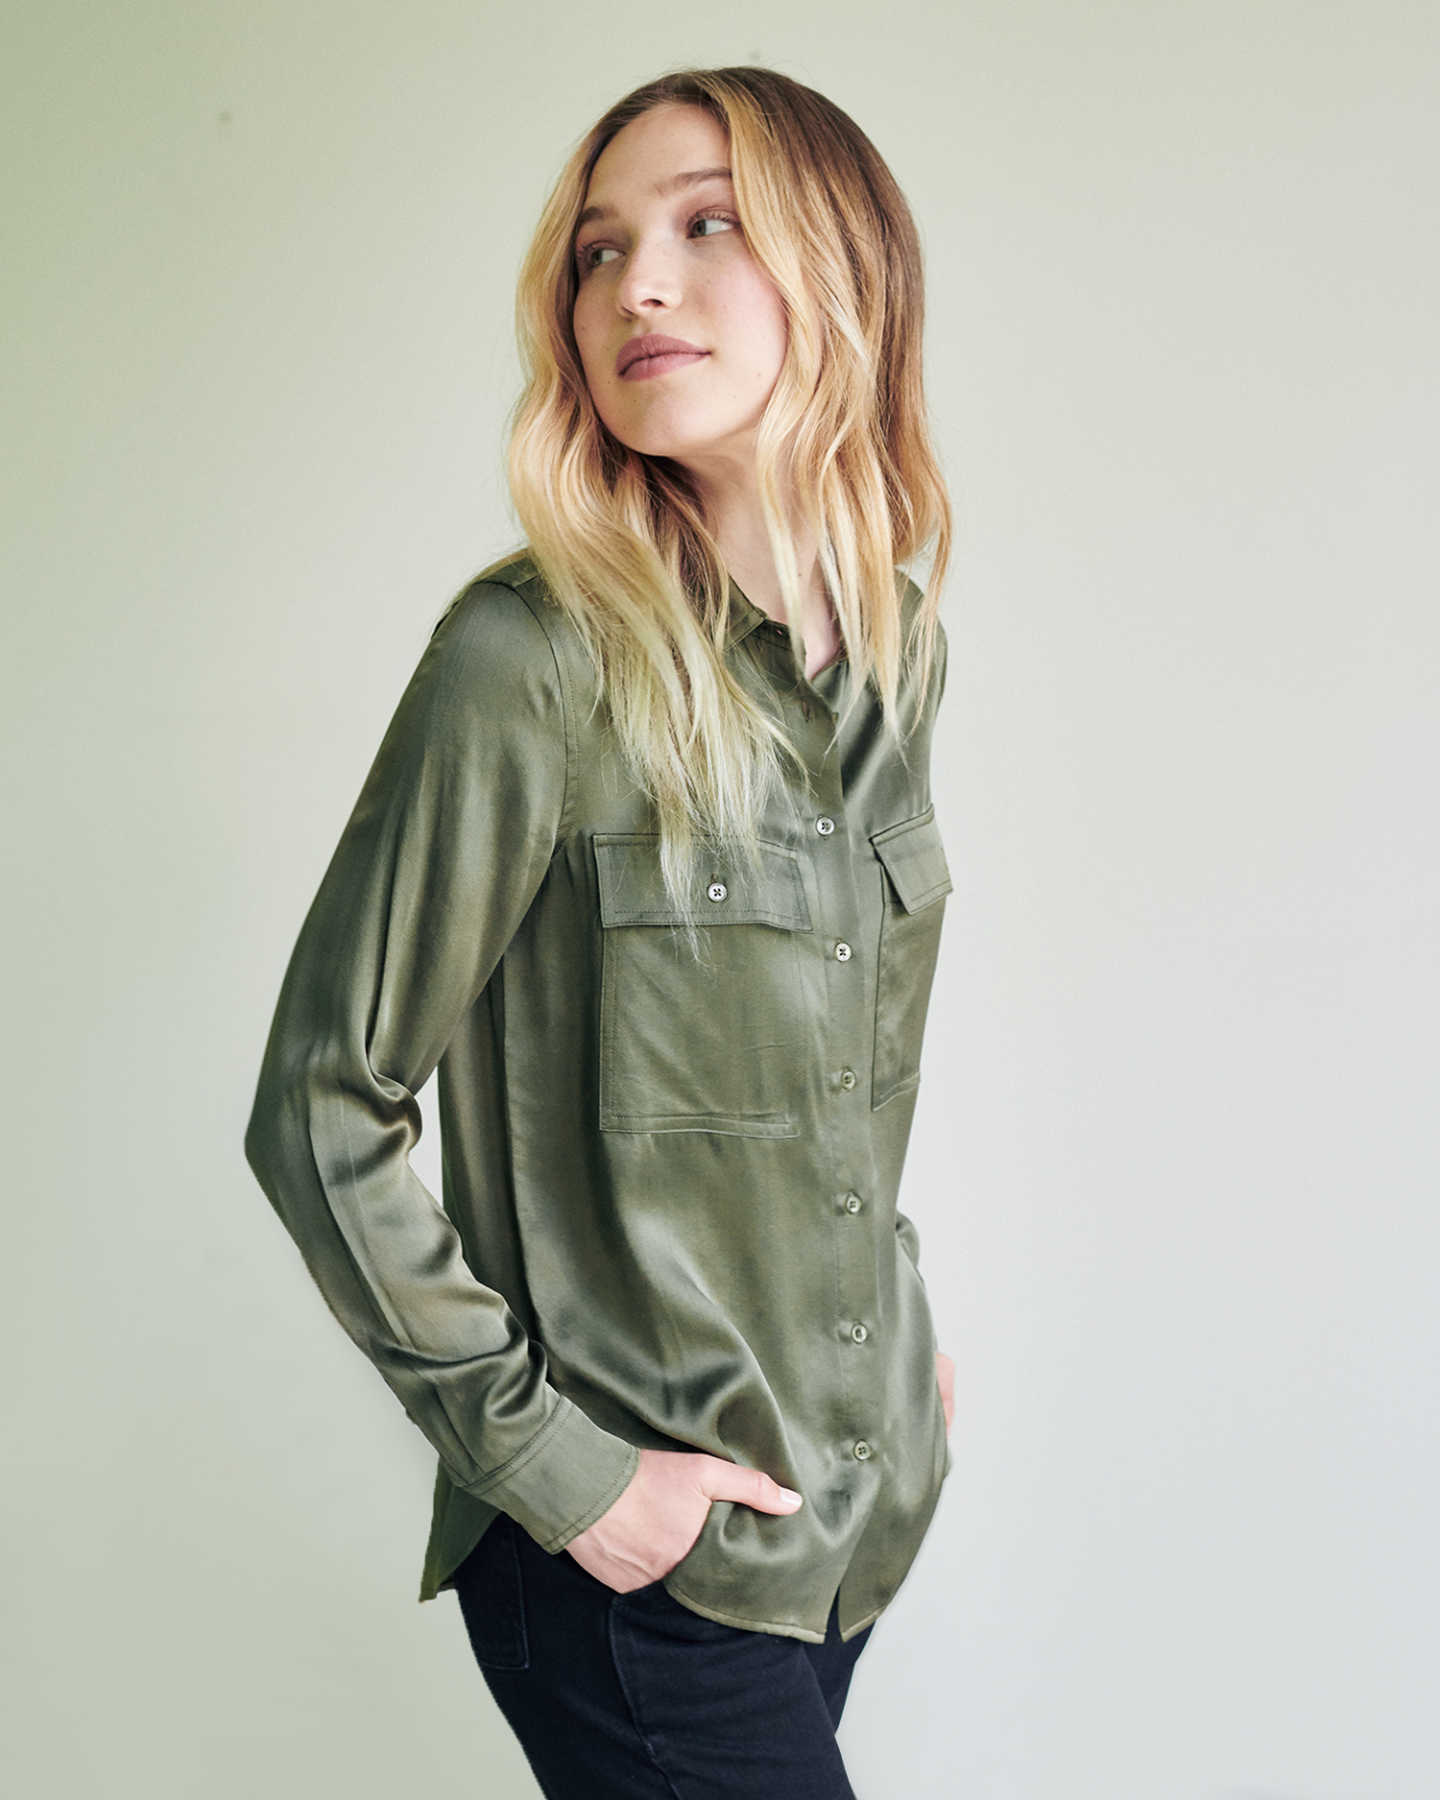 Washable Silk Two Pocket Blouse - Military Olive